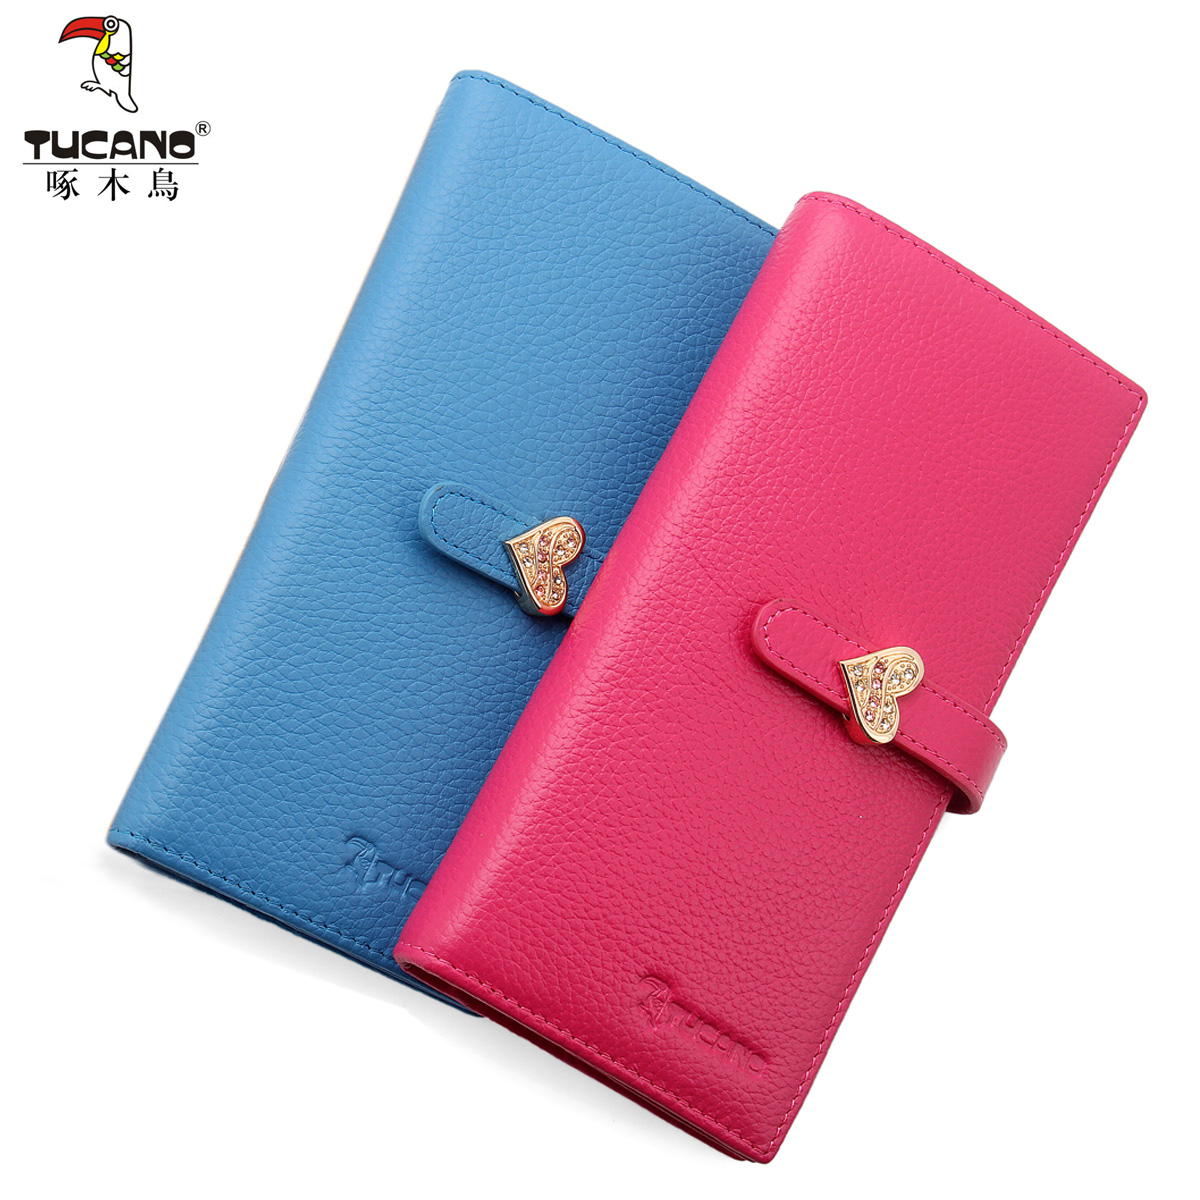 Woodpecker ms. wallet 2015 new fashion ladies handbag korean version of the first layer of leather ms. long wallet